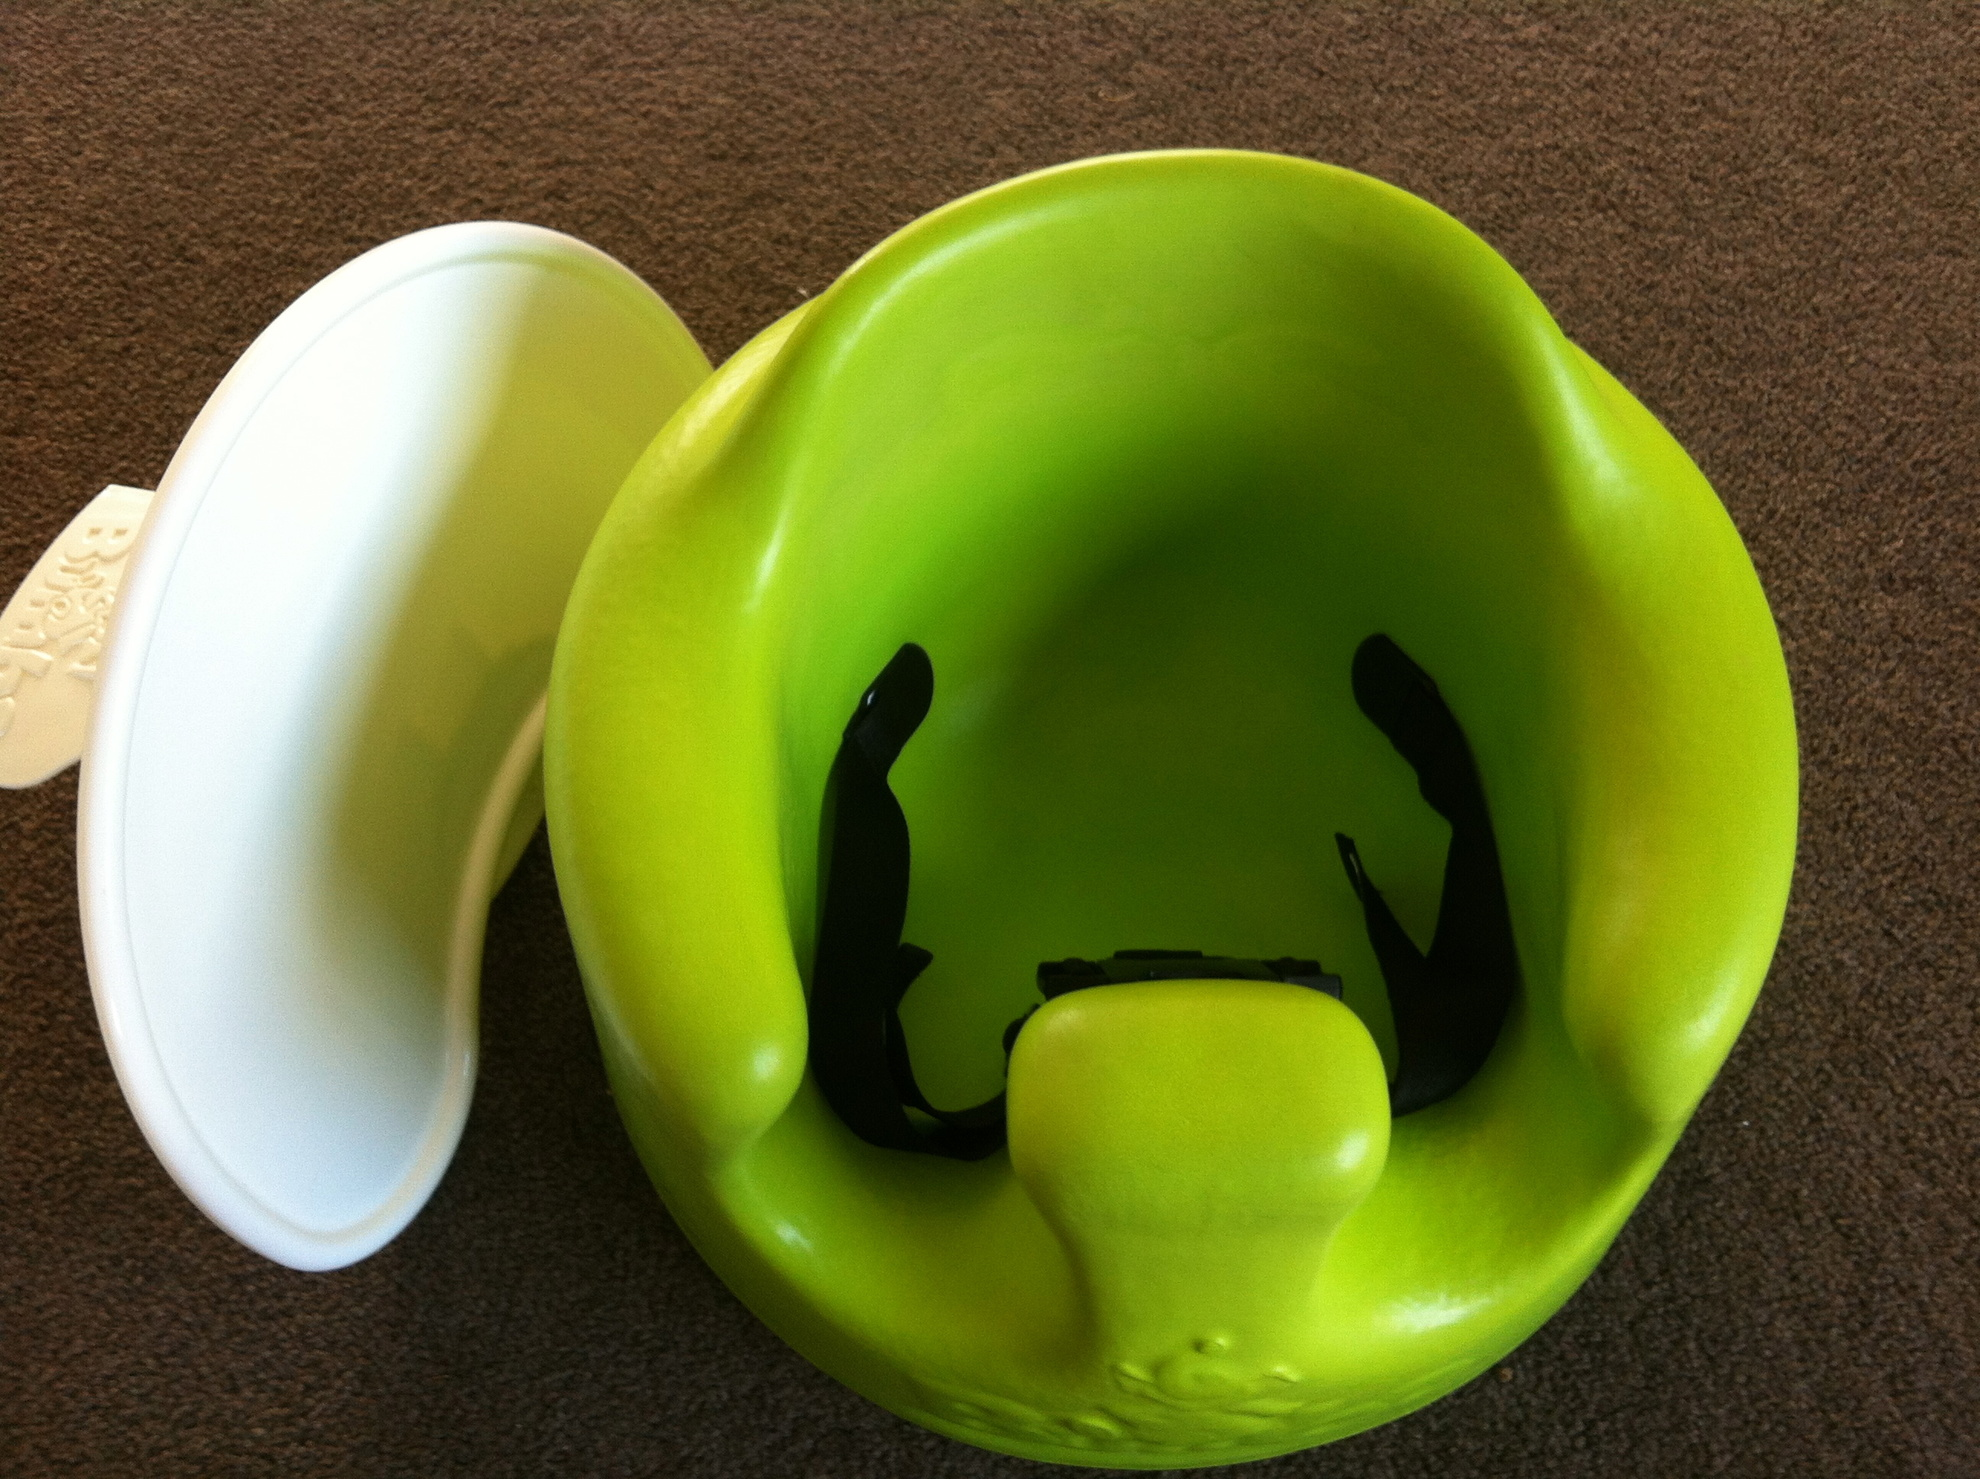 Bumbo Chair Recall All For Kids Bumbo 39s Have Full Safety Harnesses All For Kids